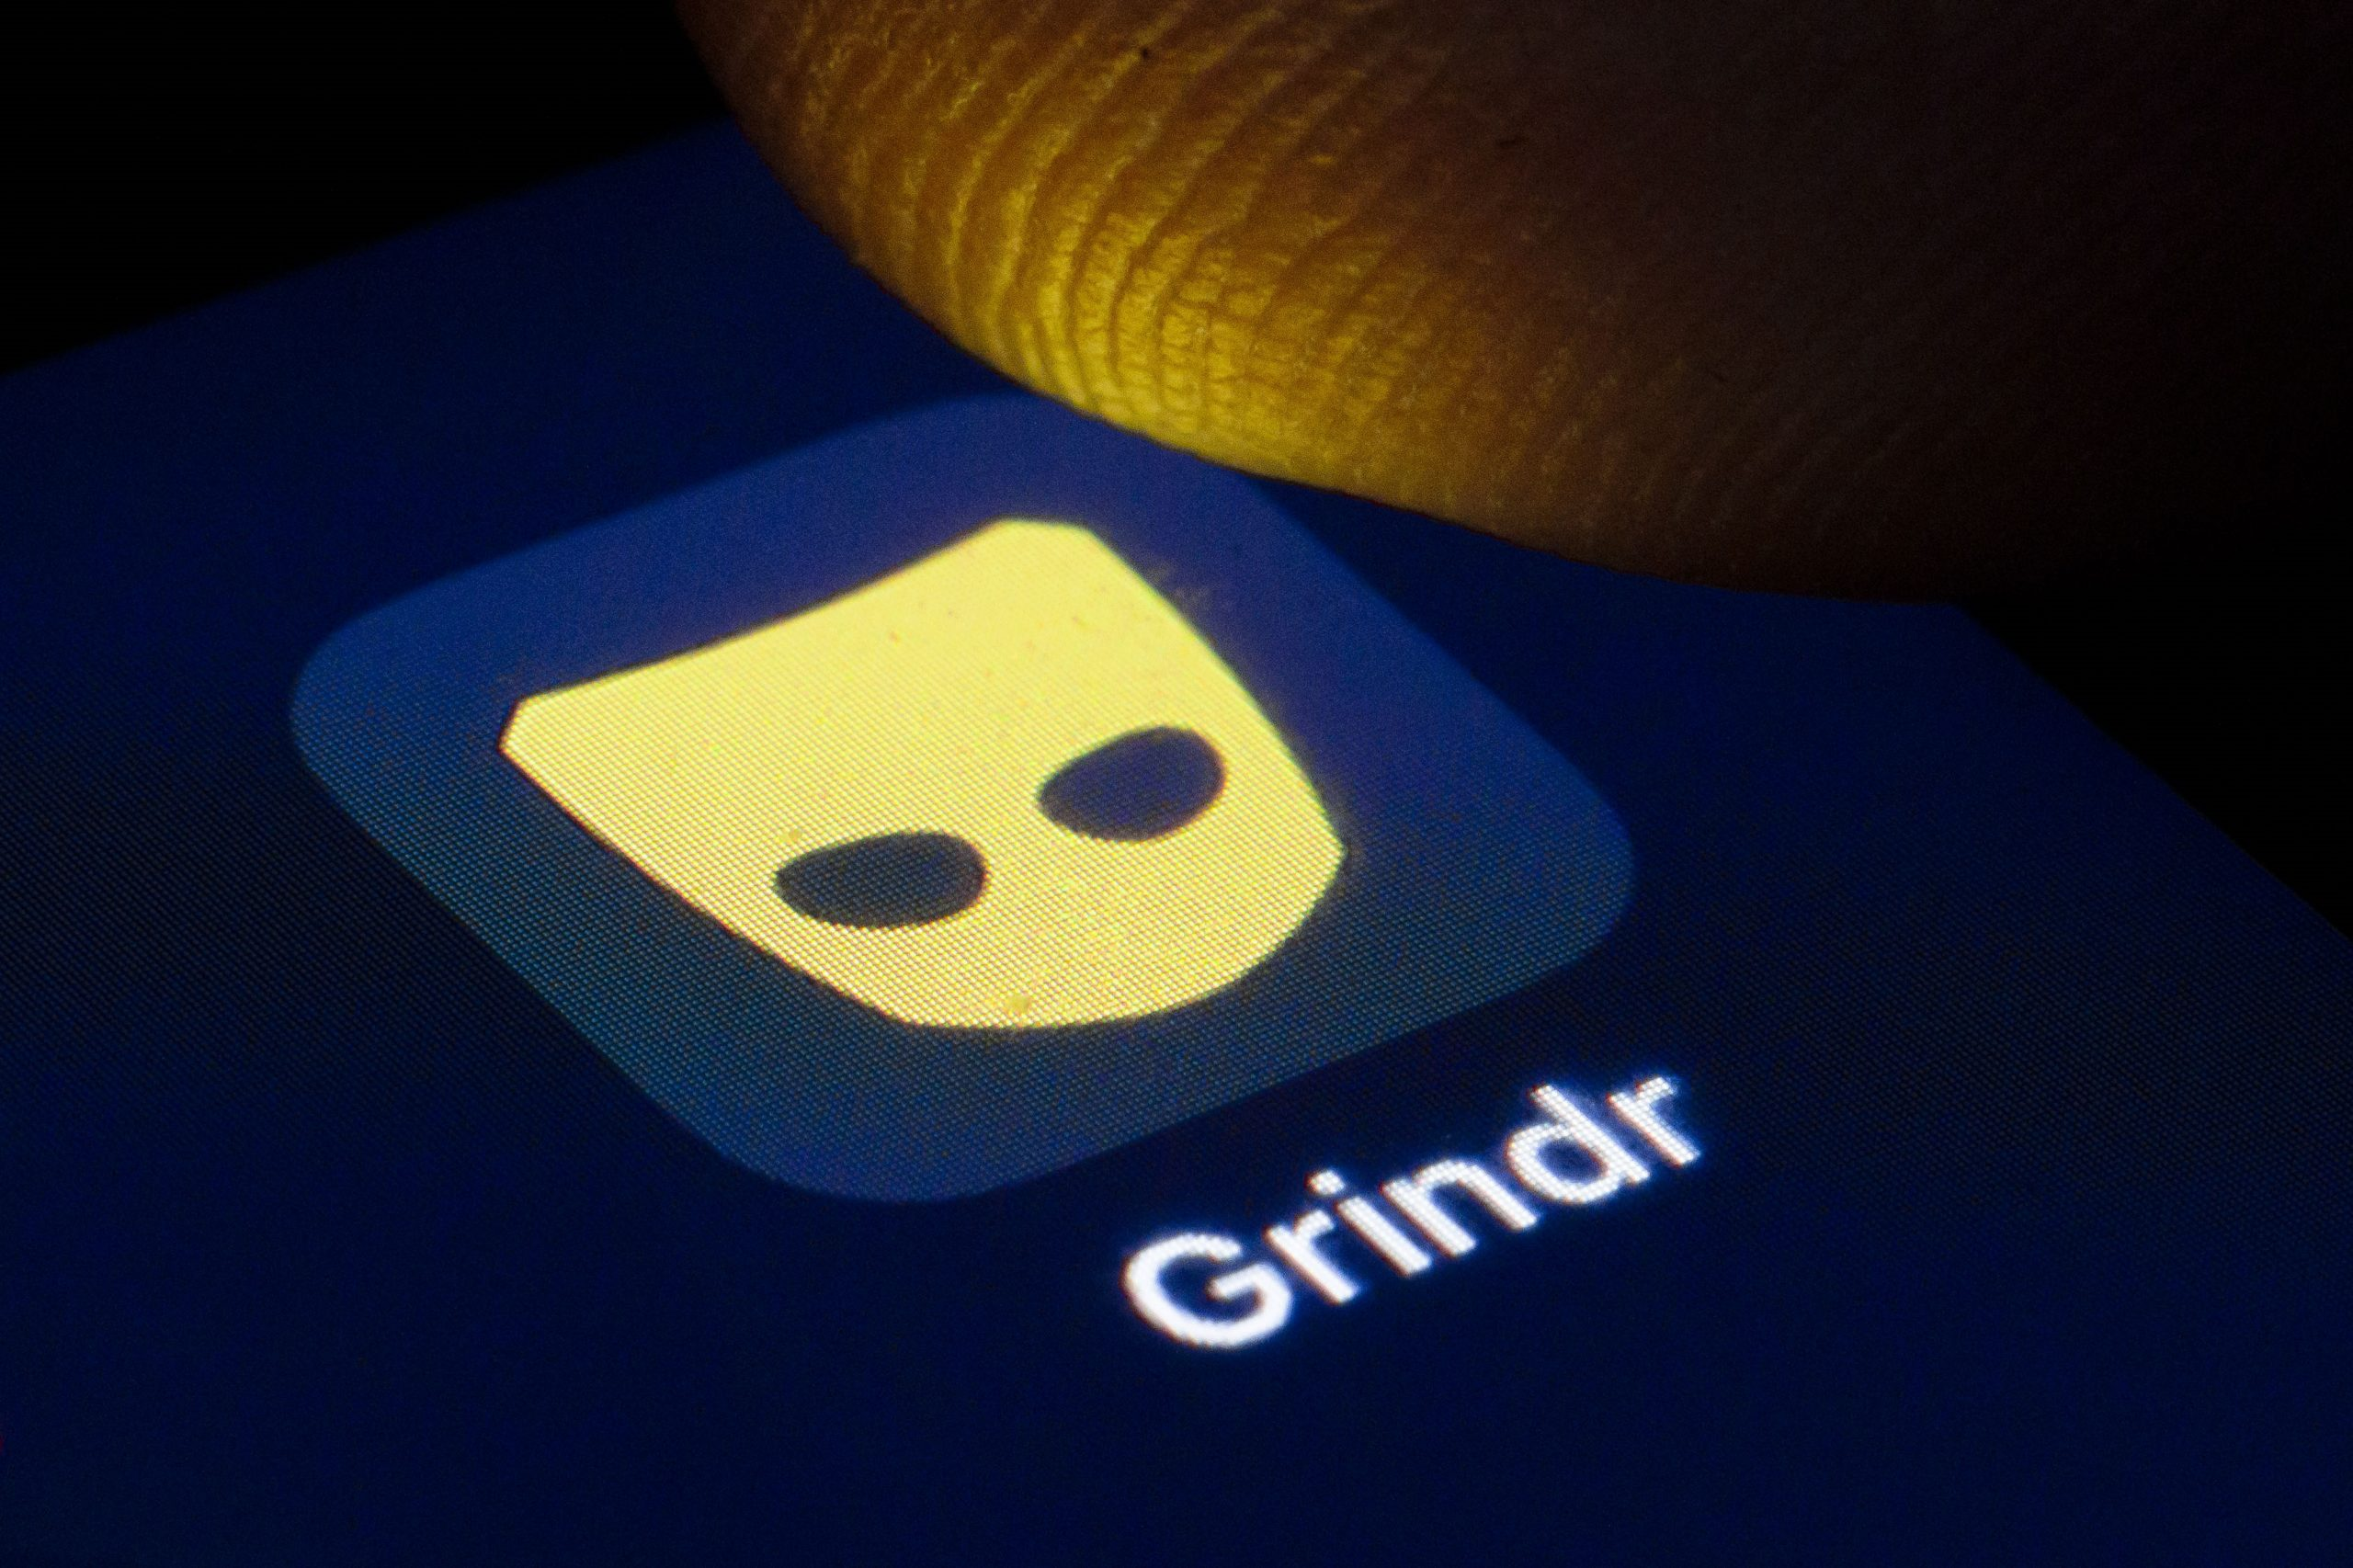 Grindr flaw allowed hijacking accounts with just an email address | DeviceDaily.com